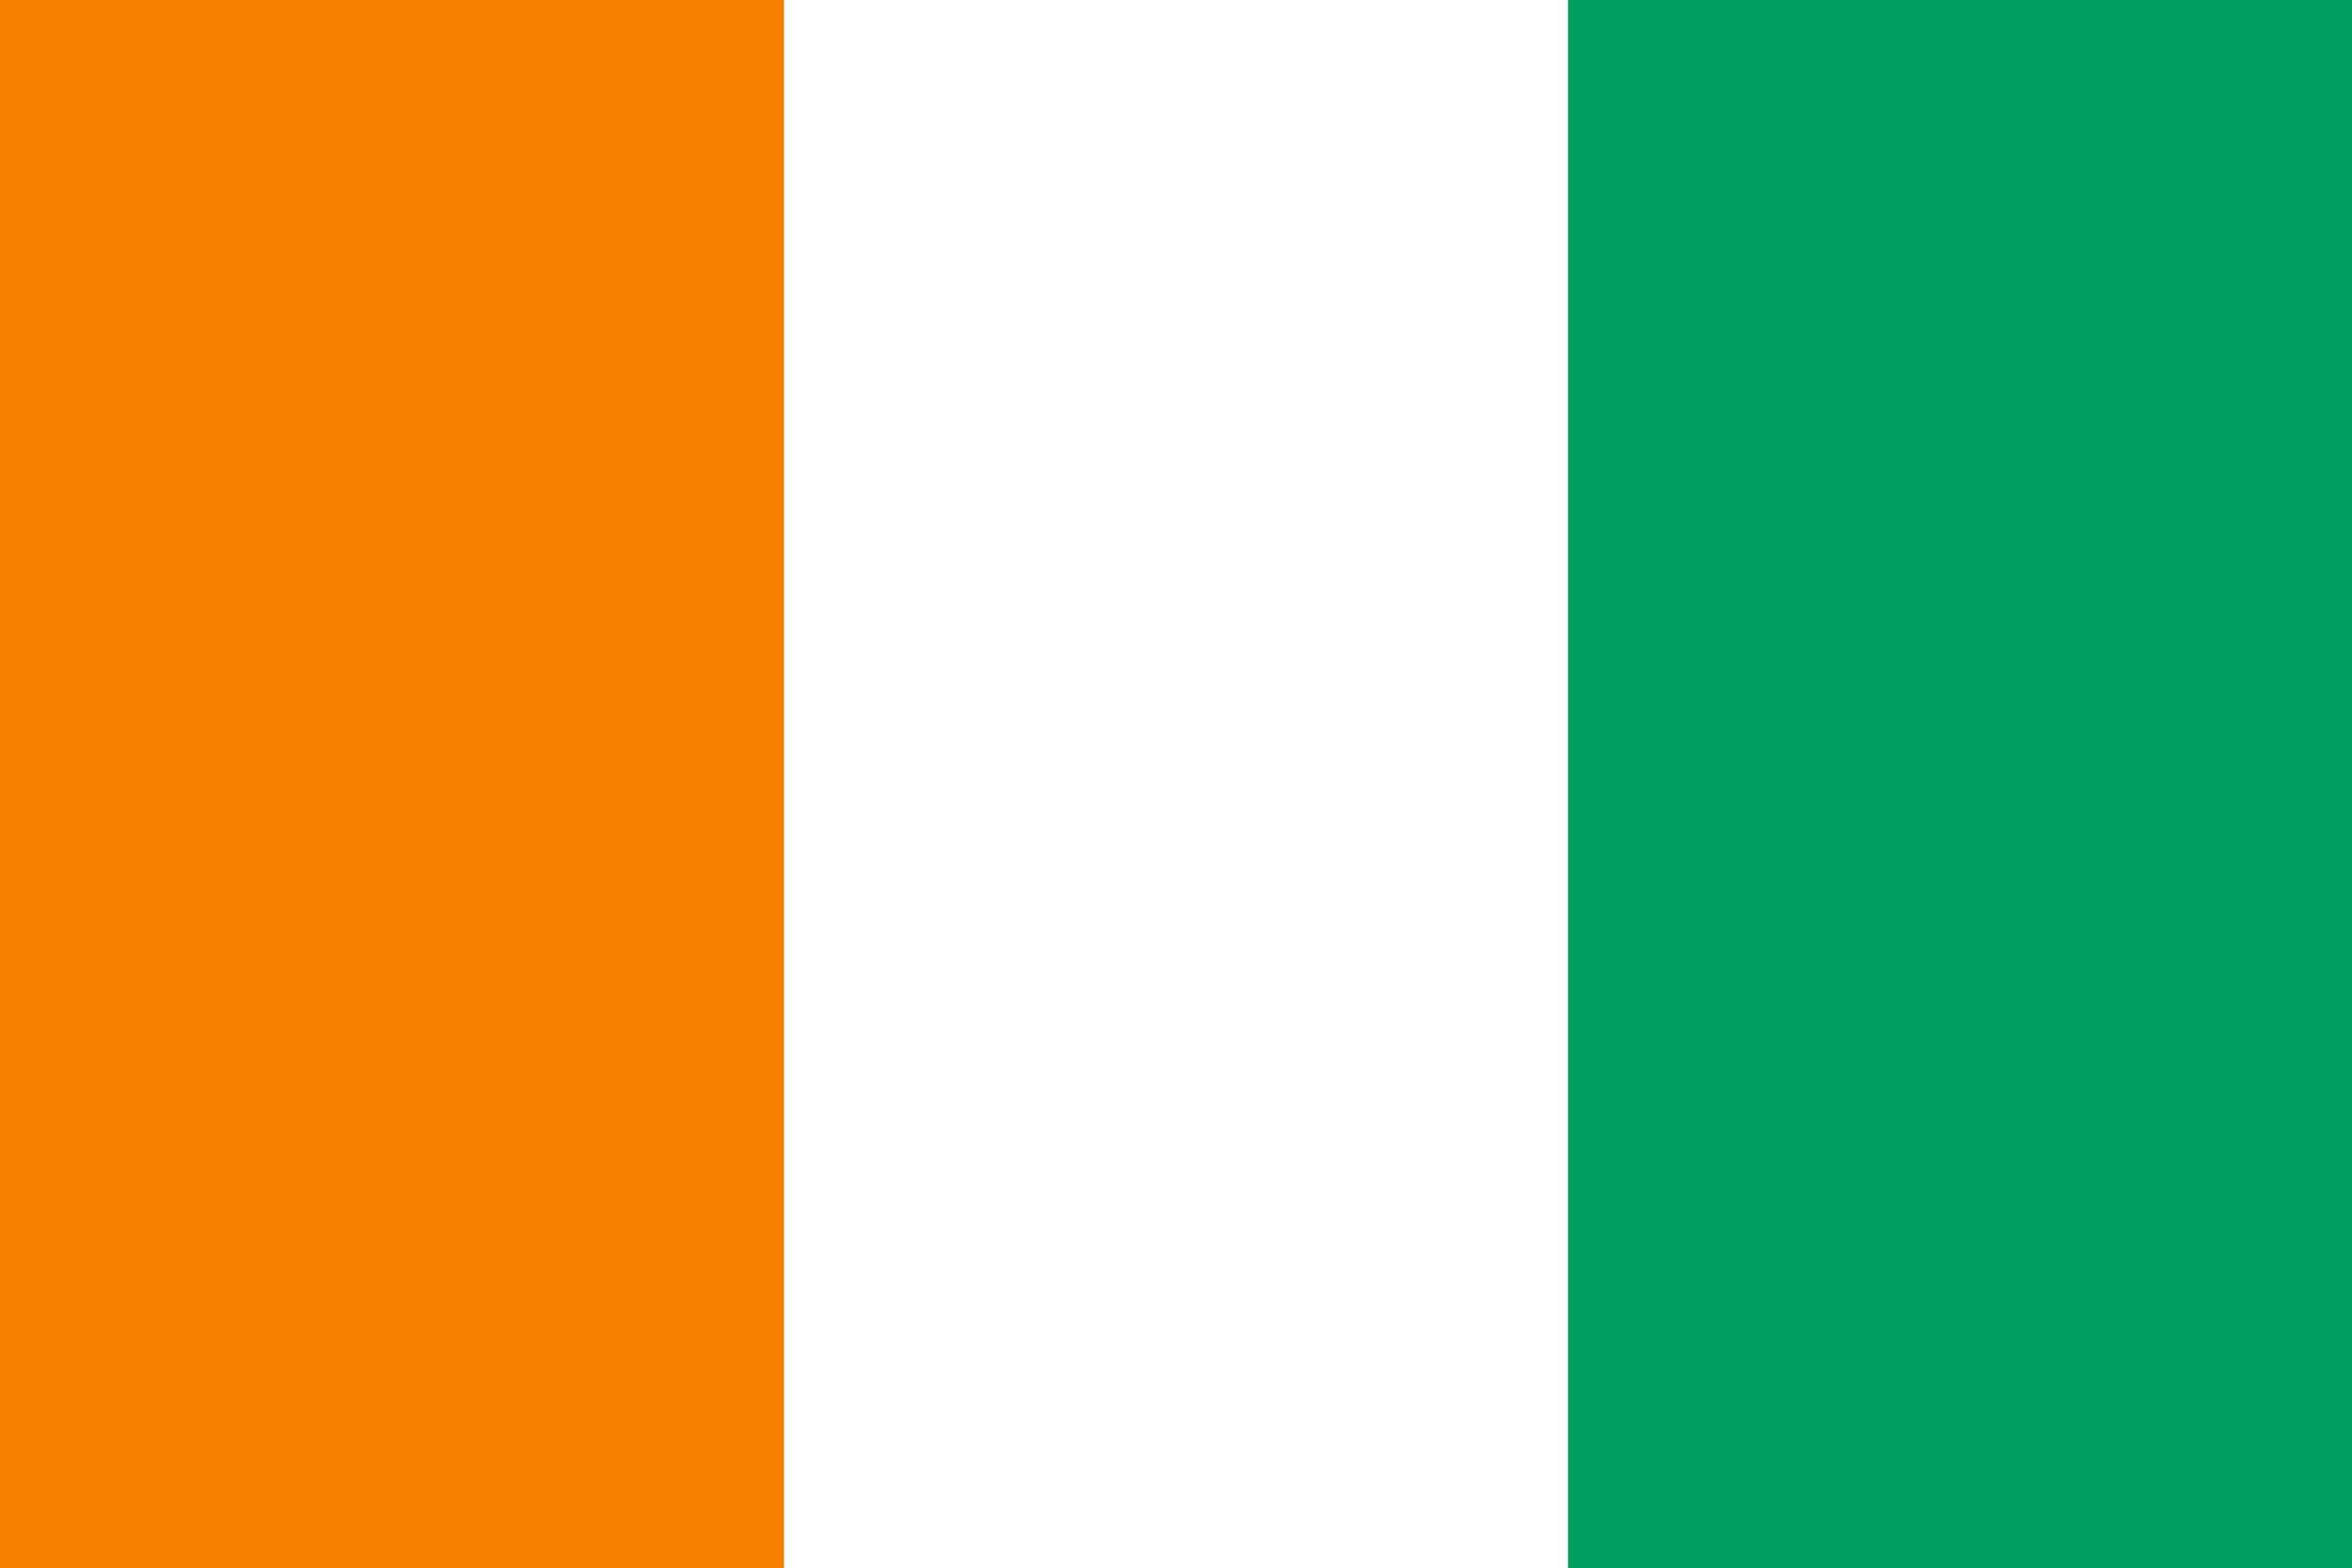 Embassy of Cote d'Ivoire